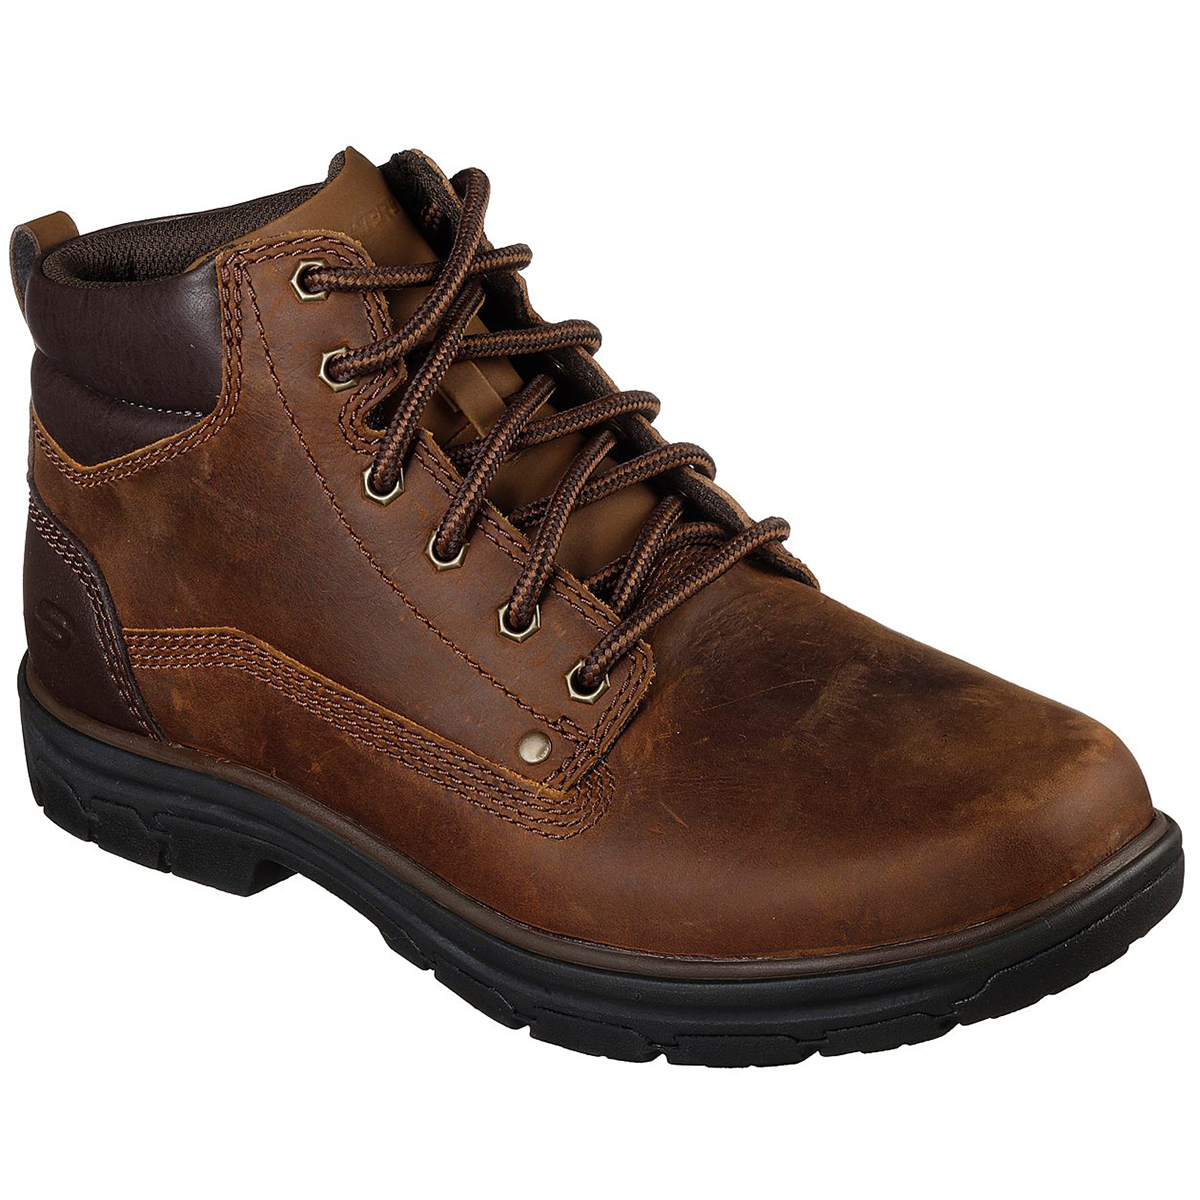 Skechers Men's Segment Garnet Round Toe Lace Up Boots, Relaxed Fit - Brown, 9.5